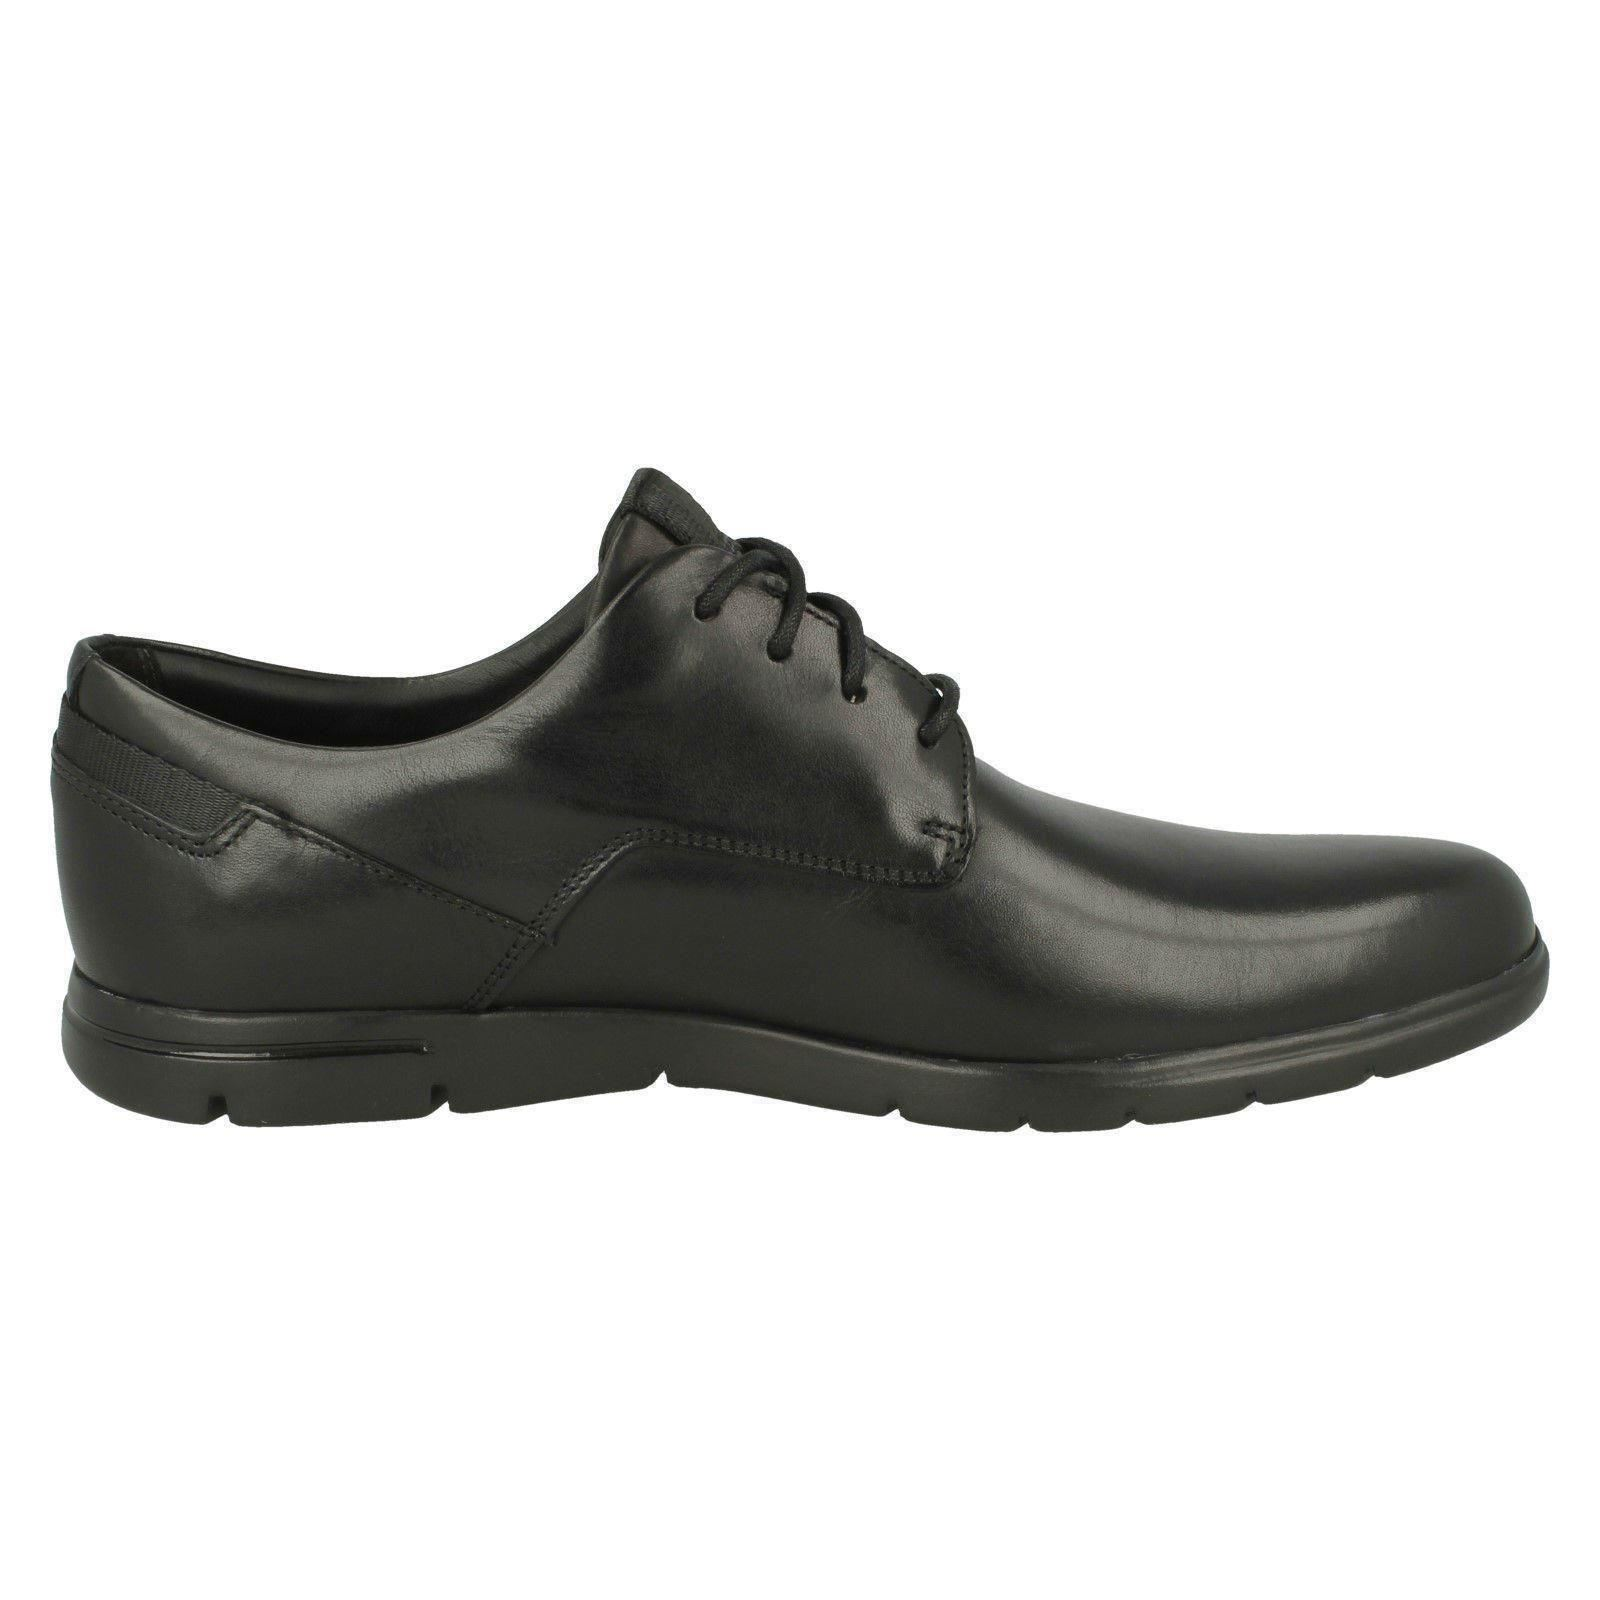 Mens Clarks Formal Lace Up Walk Shoes Vennor Walk Up 8efe5a